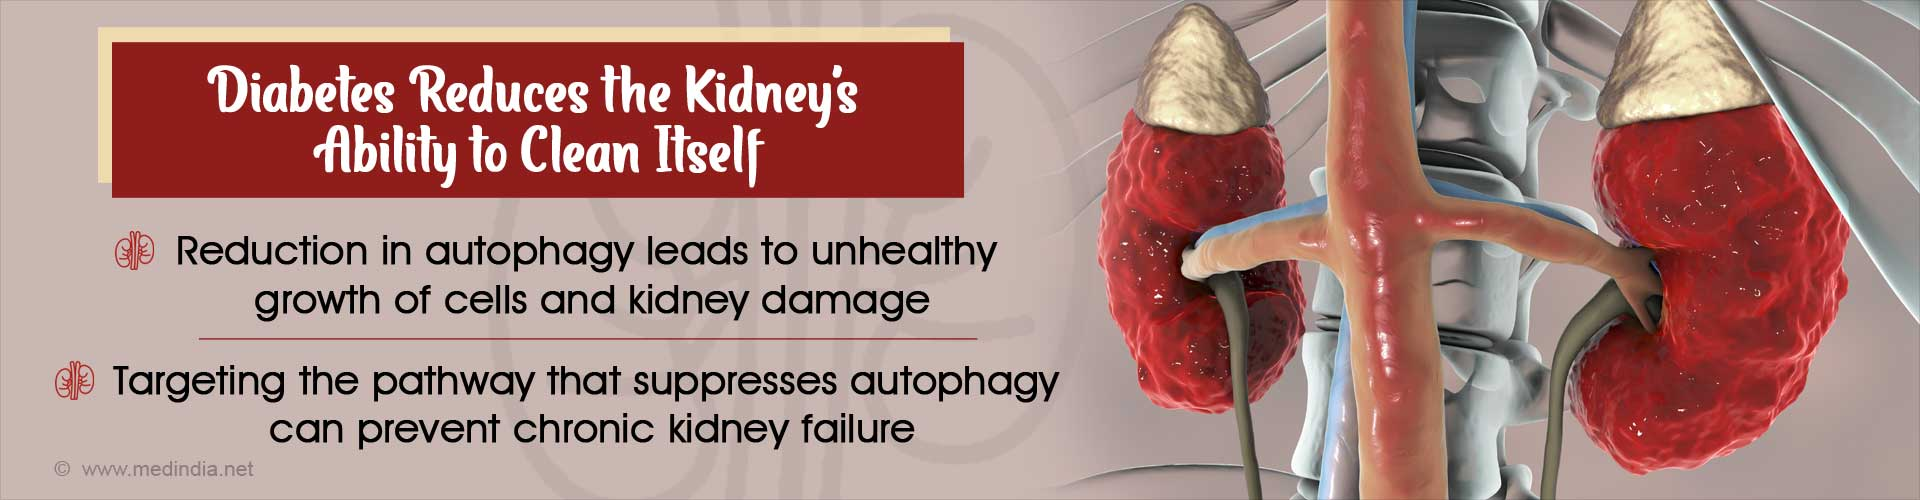 Kidney Damage in Diabetes Linked to Autophagy